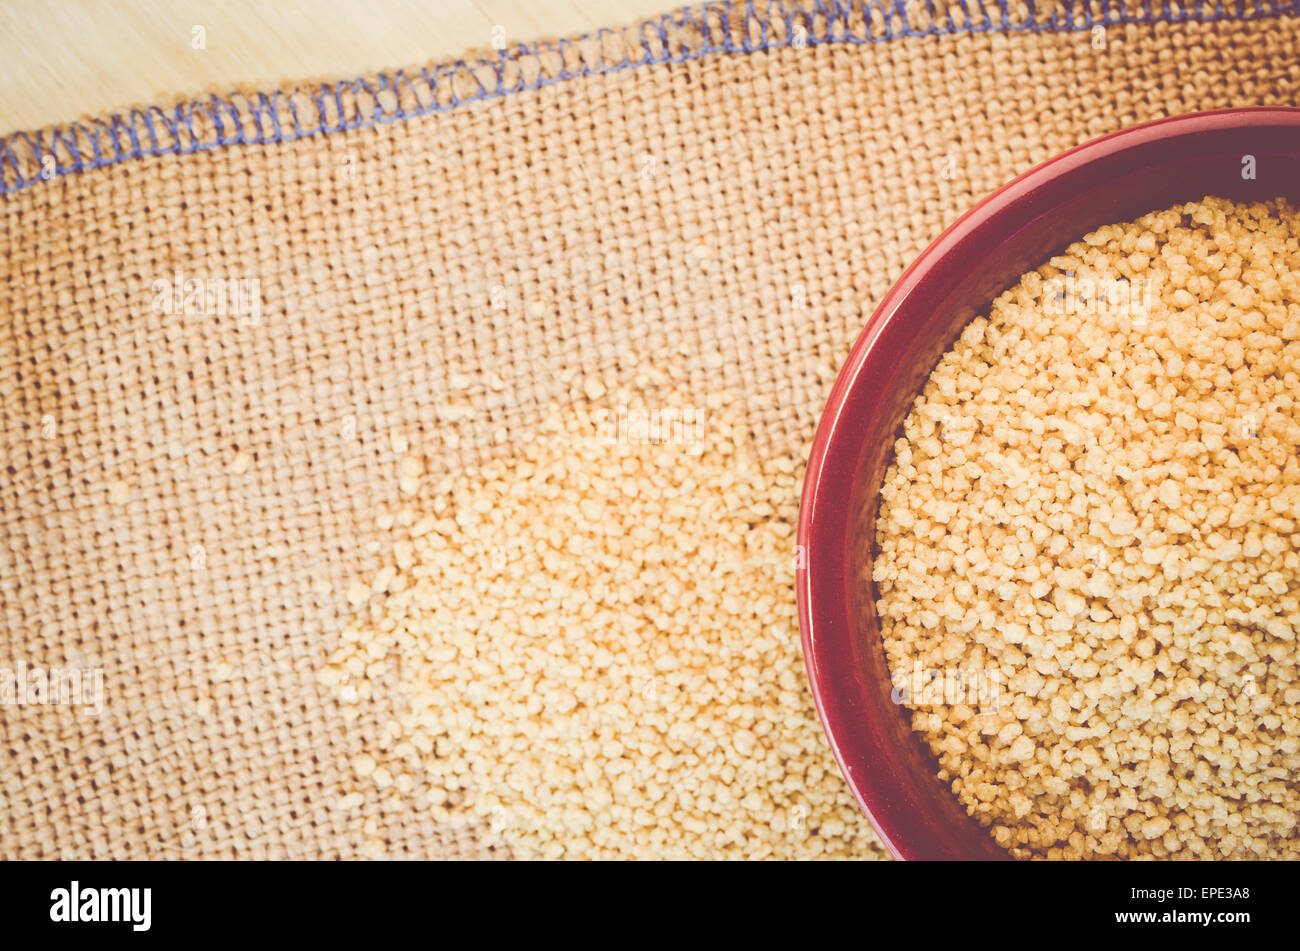 couscous grains in a brown porcelain bowl on a burlap surface - Stock Image